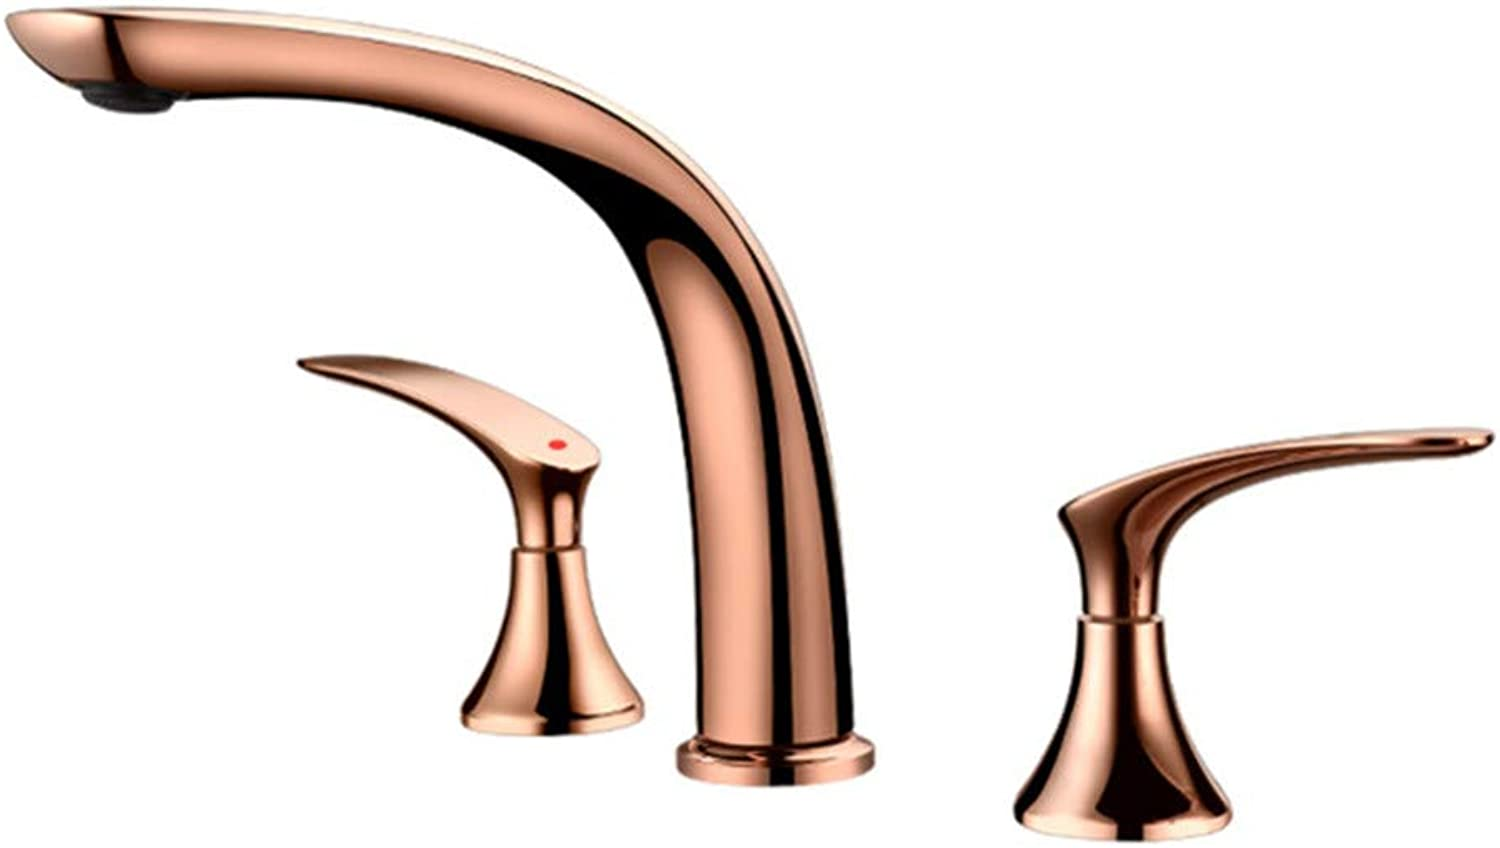 PajCzh Sink Bathroom Sink Taps golden Three-Hole Split Basin Mixer Full Copper Three-Piece Hot And Cold Wash Basin Bathtub Side Faucet B